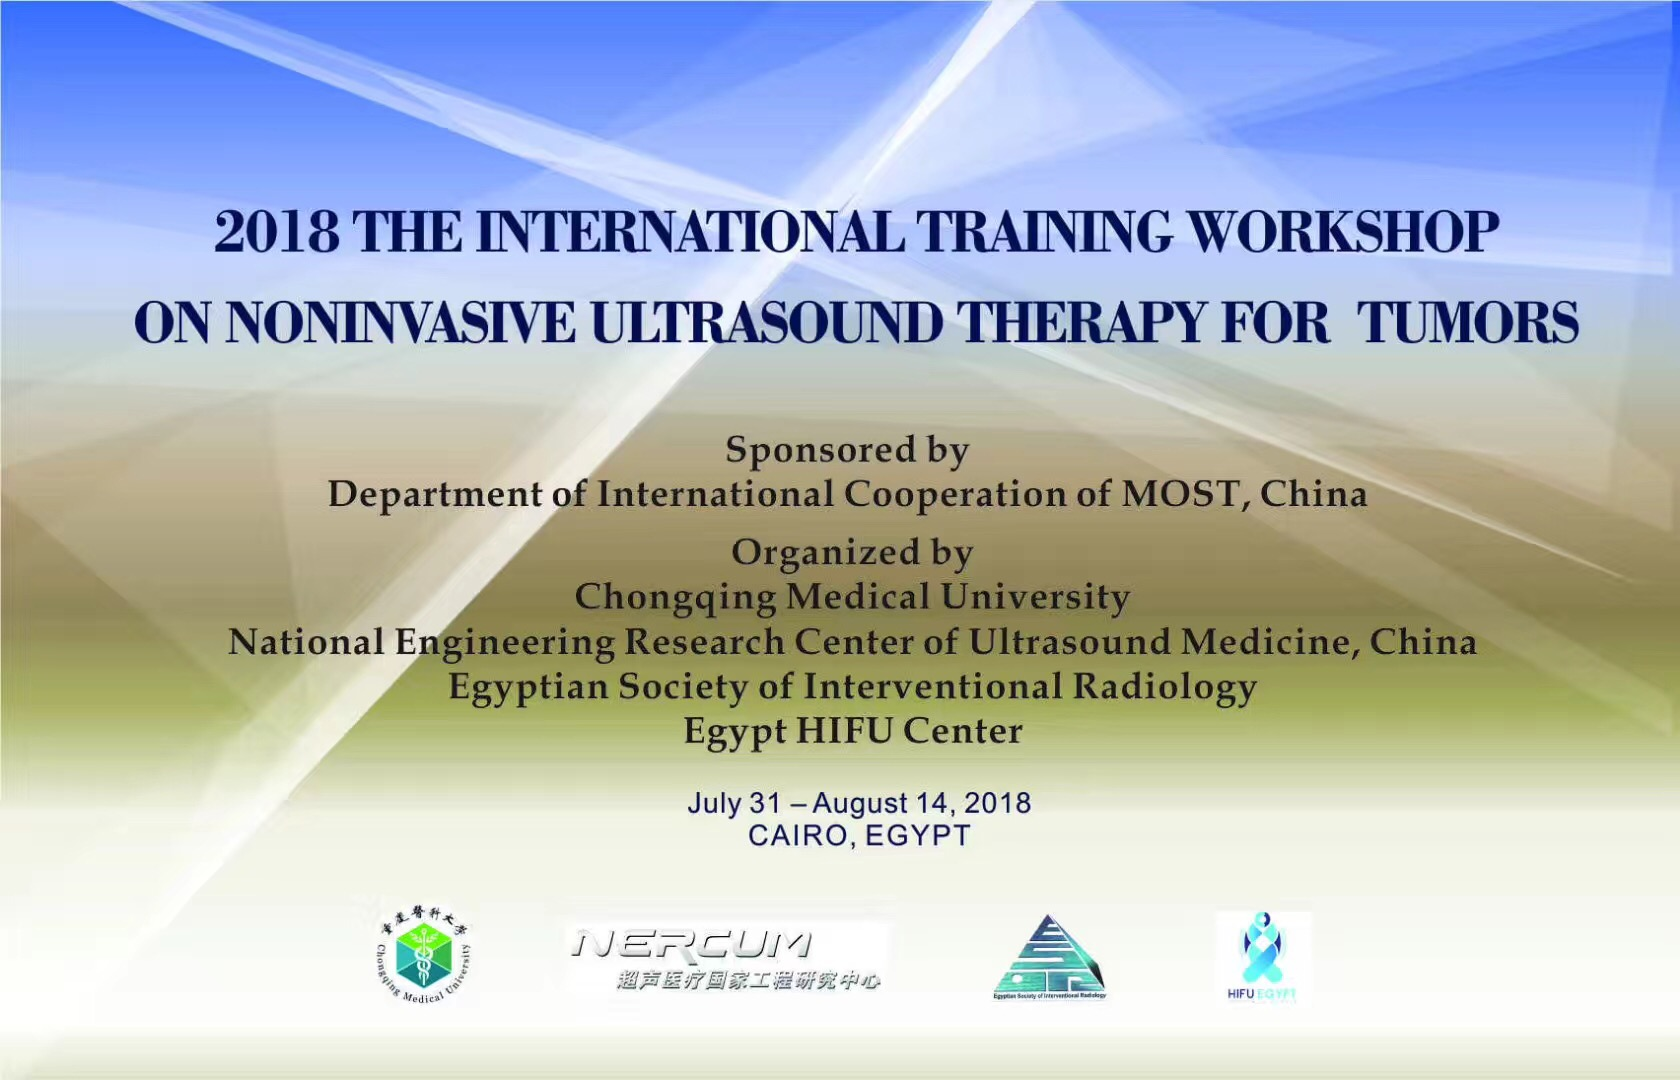 Report from the 2018 International Training Workshop on Noninvasive Ultrasound Therapy for Tumors